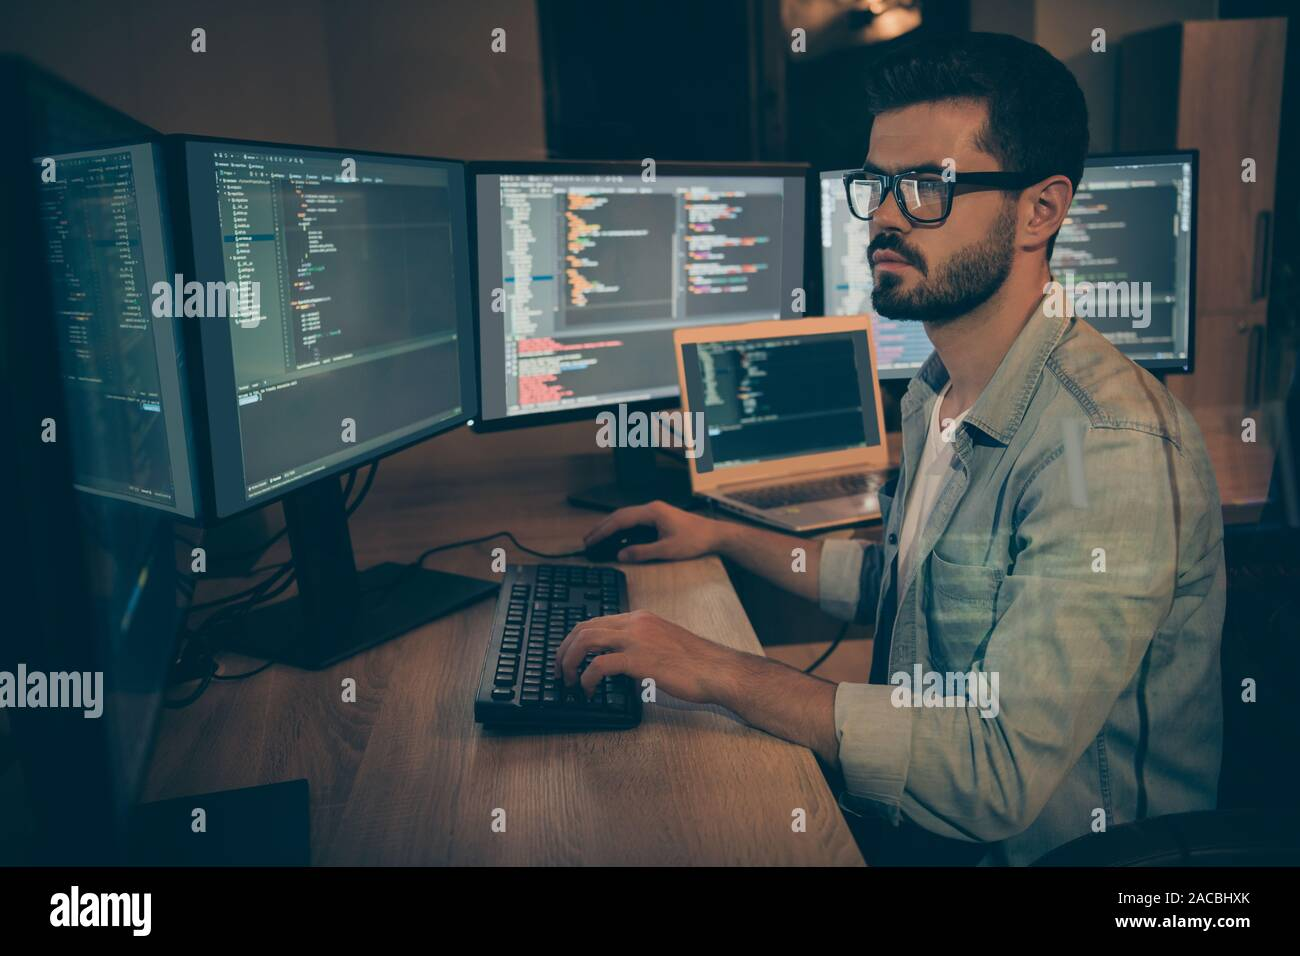 Photo of serious administrator responsible for cyber security of large corporation searching for safety gaps debugging existant operating system to Stock Photo